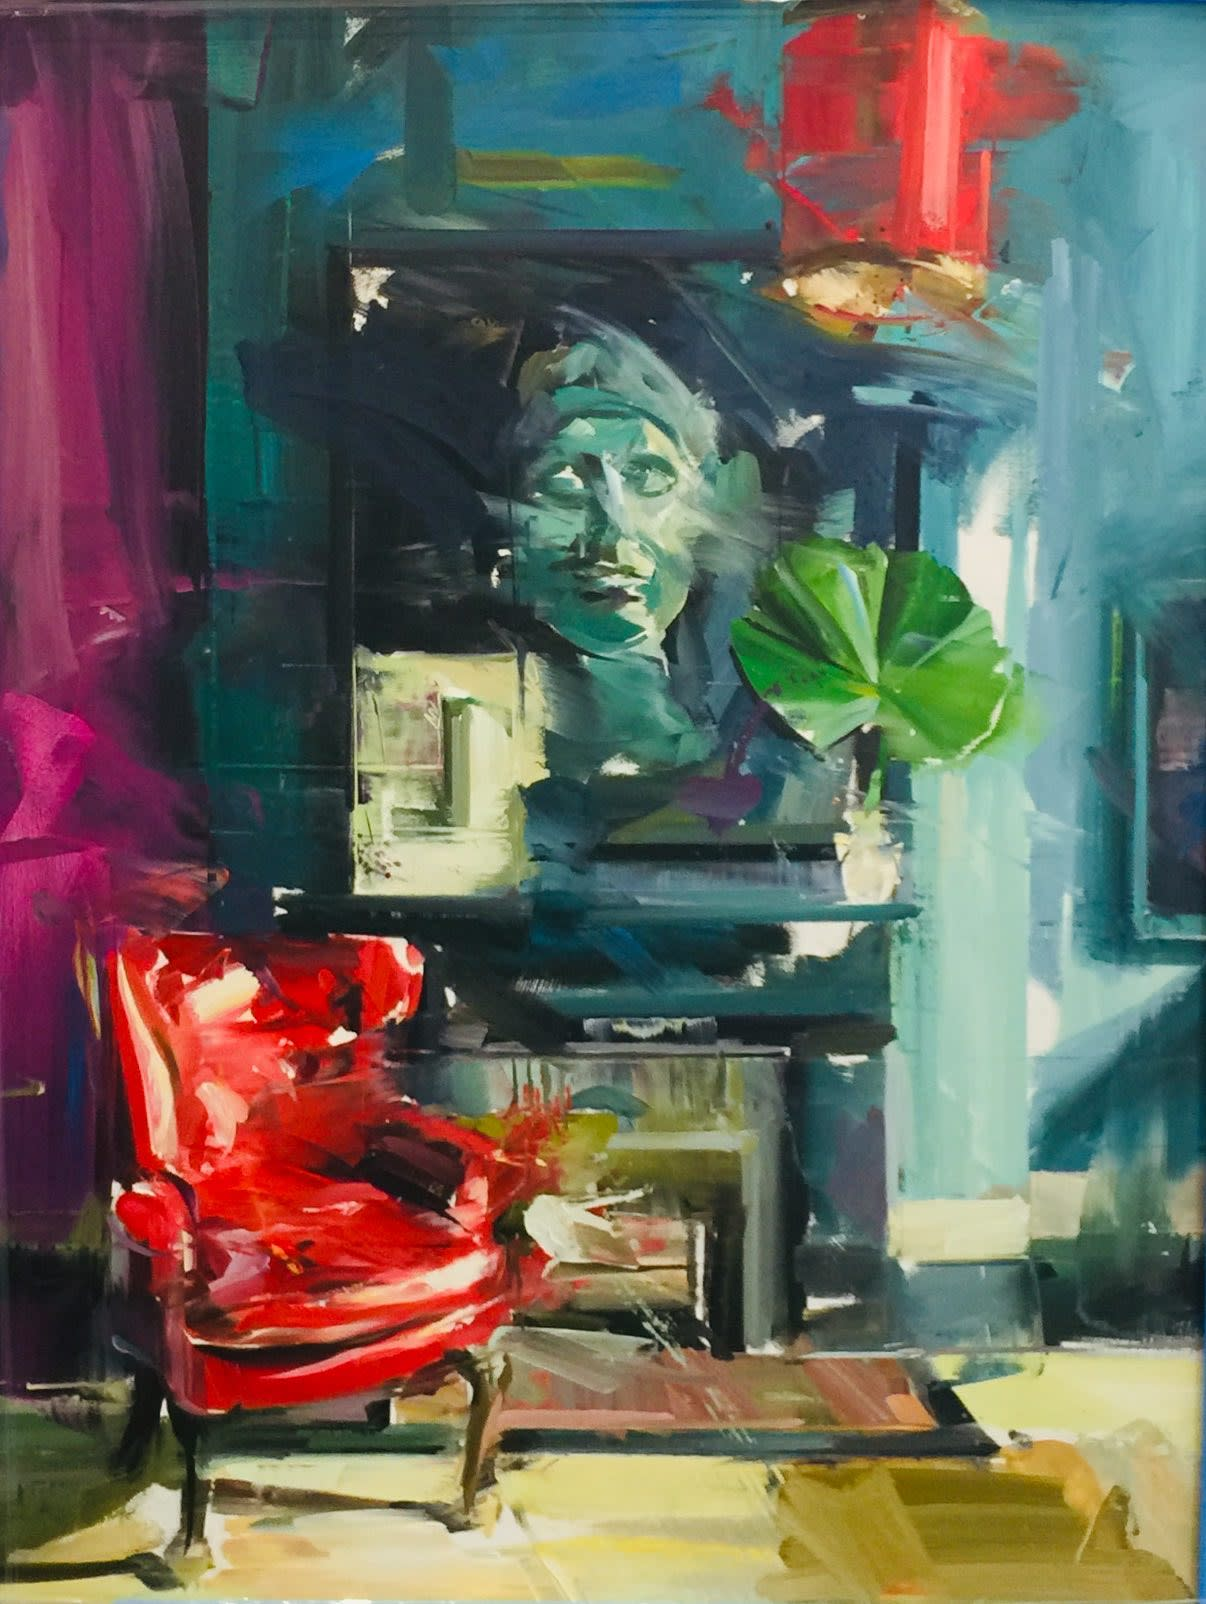 "<span class=""link fancybox-details-link""><a href=""/artists/188-paul-wright/works/2633-paul-wright-red-chair-rug-face/"">View Detail Page</a></span><div class=""artist""><strong>Paul Wright</strong></div> <div class=""title""><em>Red Chair, Rug, Face </em></div> <div class=""medium"">Oil on Linen</div> <div class=""dimensions"">130 x 100 cm </div><div class=""price"">£6,666.67</div><div class=""copyright_line"">Copyright The Artist</div>"